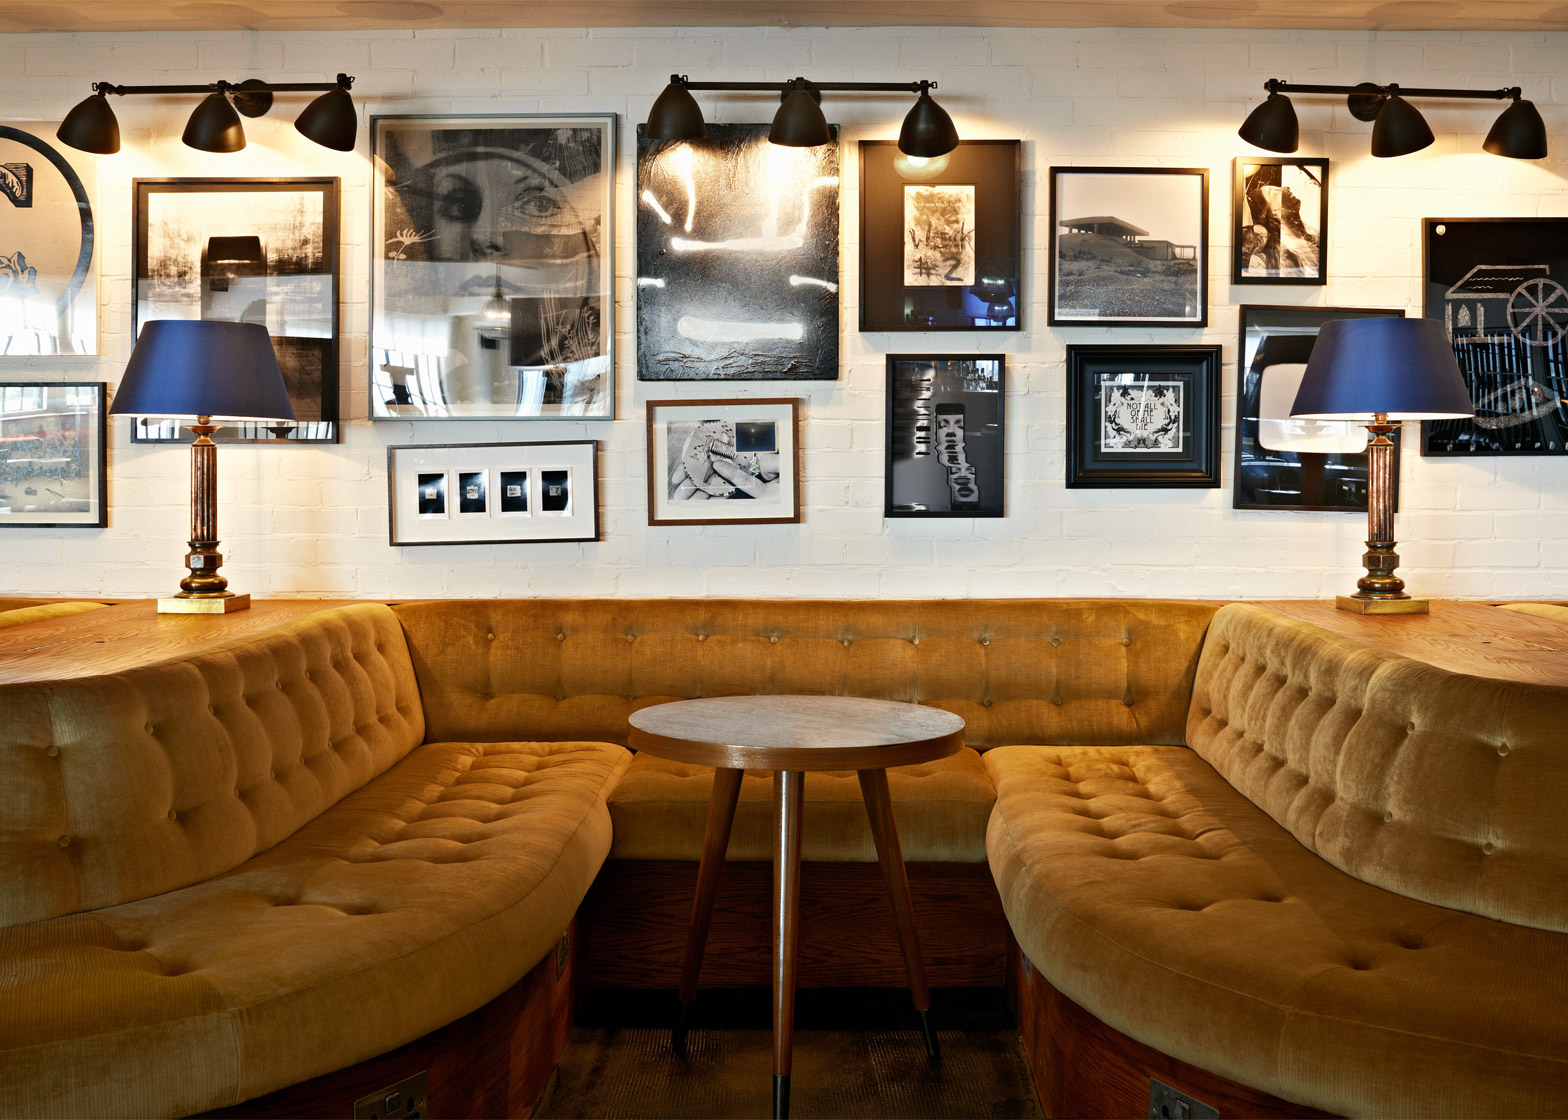 shoreditch-house-soho-beach-house-miami-nick-jones-soho-house-interview-slideshow_dezeen_1568_1.jpg